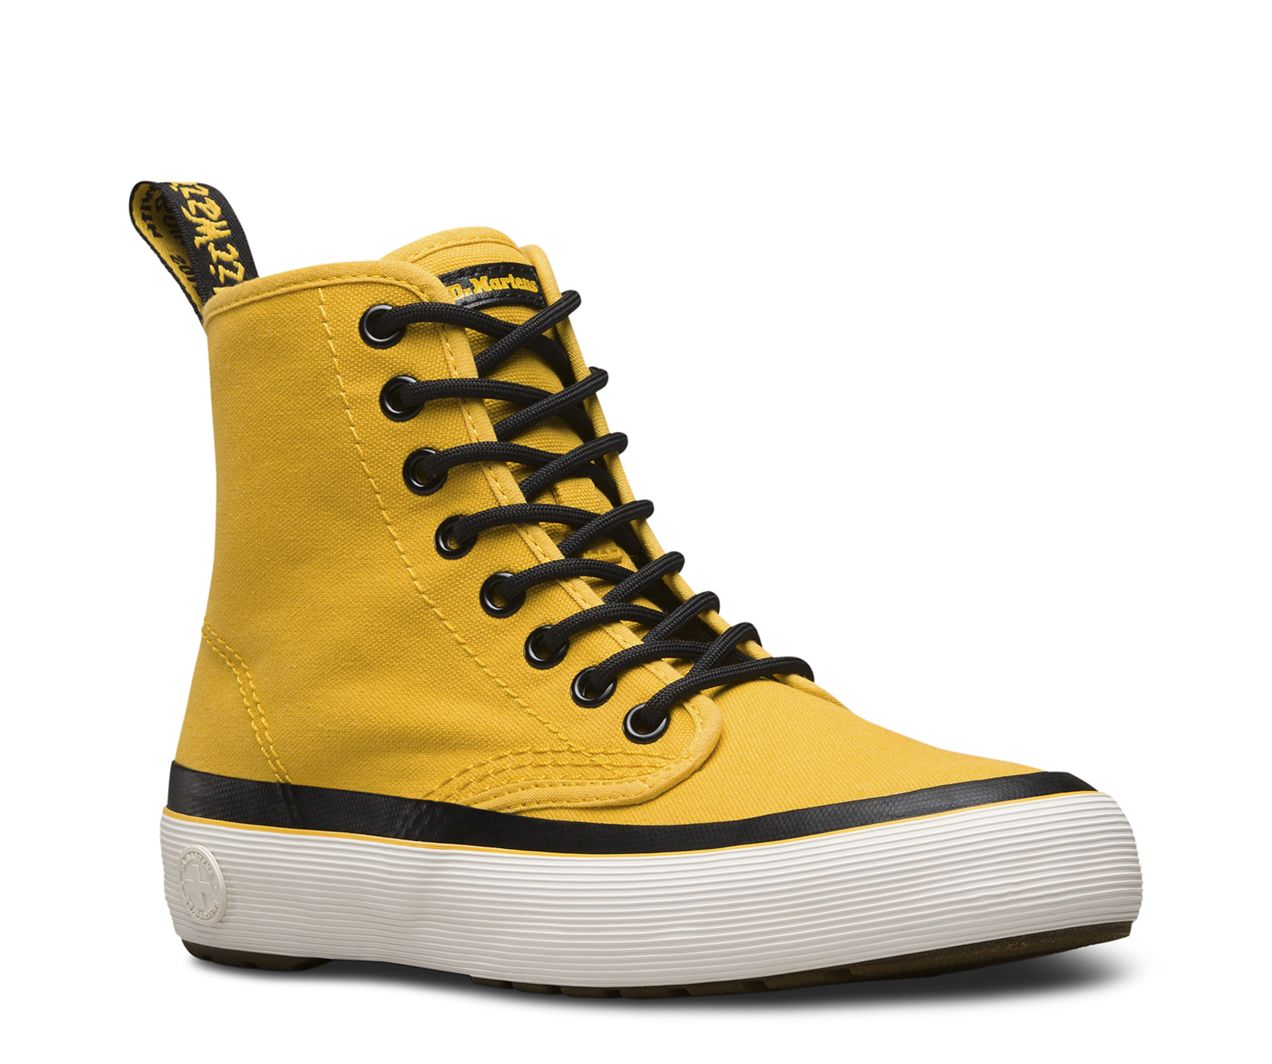 The ''90s-inspired Monet boot is made with a lightweight weave canvas and features a thick, chunky rubber sole. All the classic Doc's DNA is represented here, including grooved sides and a yellow heel loop - all constructed on our iconic and durable air-cushioned sole.